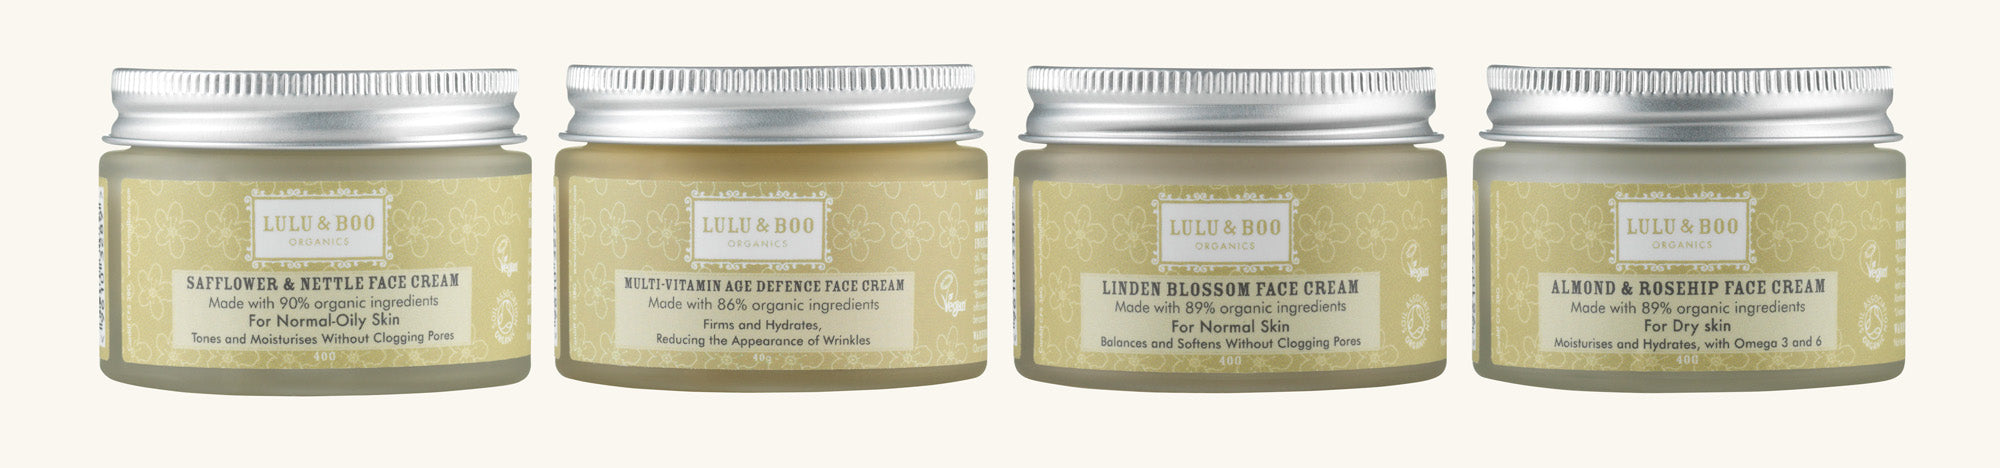 Lulu & Boo Vegan Face Cream Range